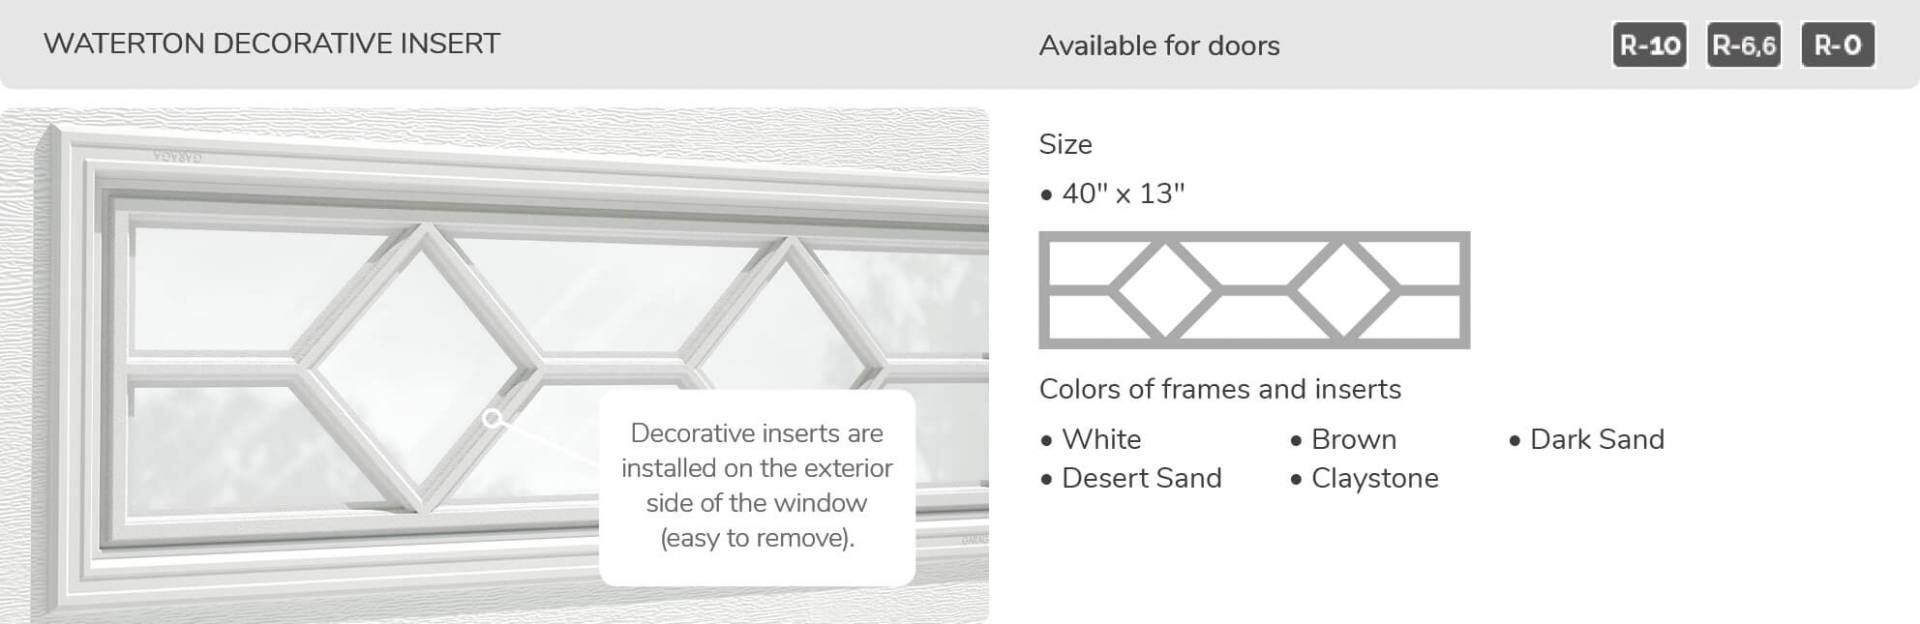 Waterton Decorative Insert, 40' x 13', available for doors R-10, R-6.6, R-0